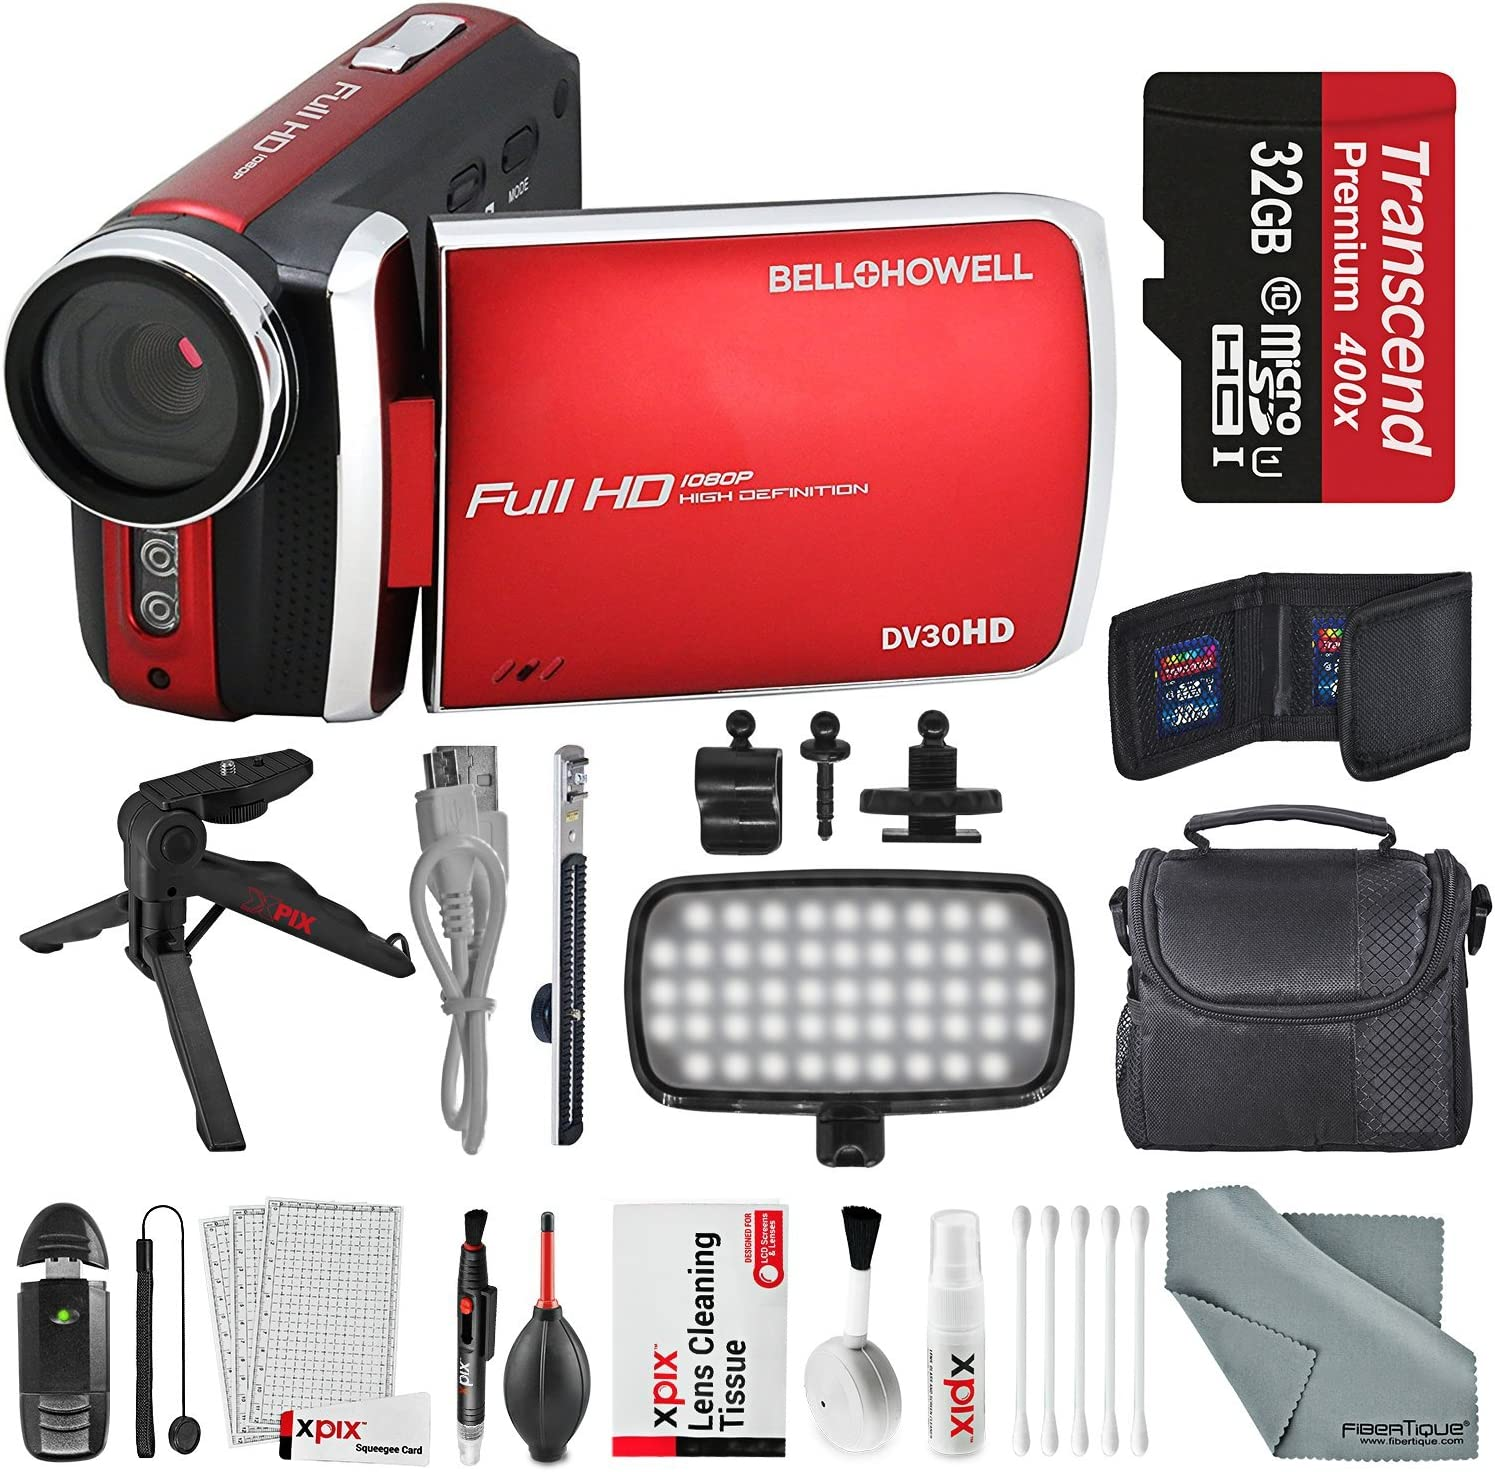 Bell & Howell DV30HD 1080p HD Video Camera Camcorder (Red) + Case, LED Light, Tripod, 32GB Memory Card, Memory Card Wallet, Card Reader & Xpix Deluxe Cleaning Accessories